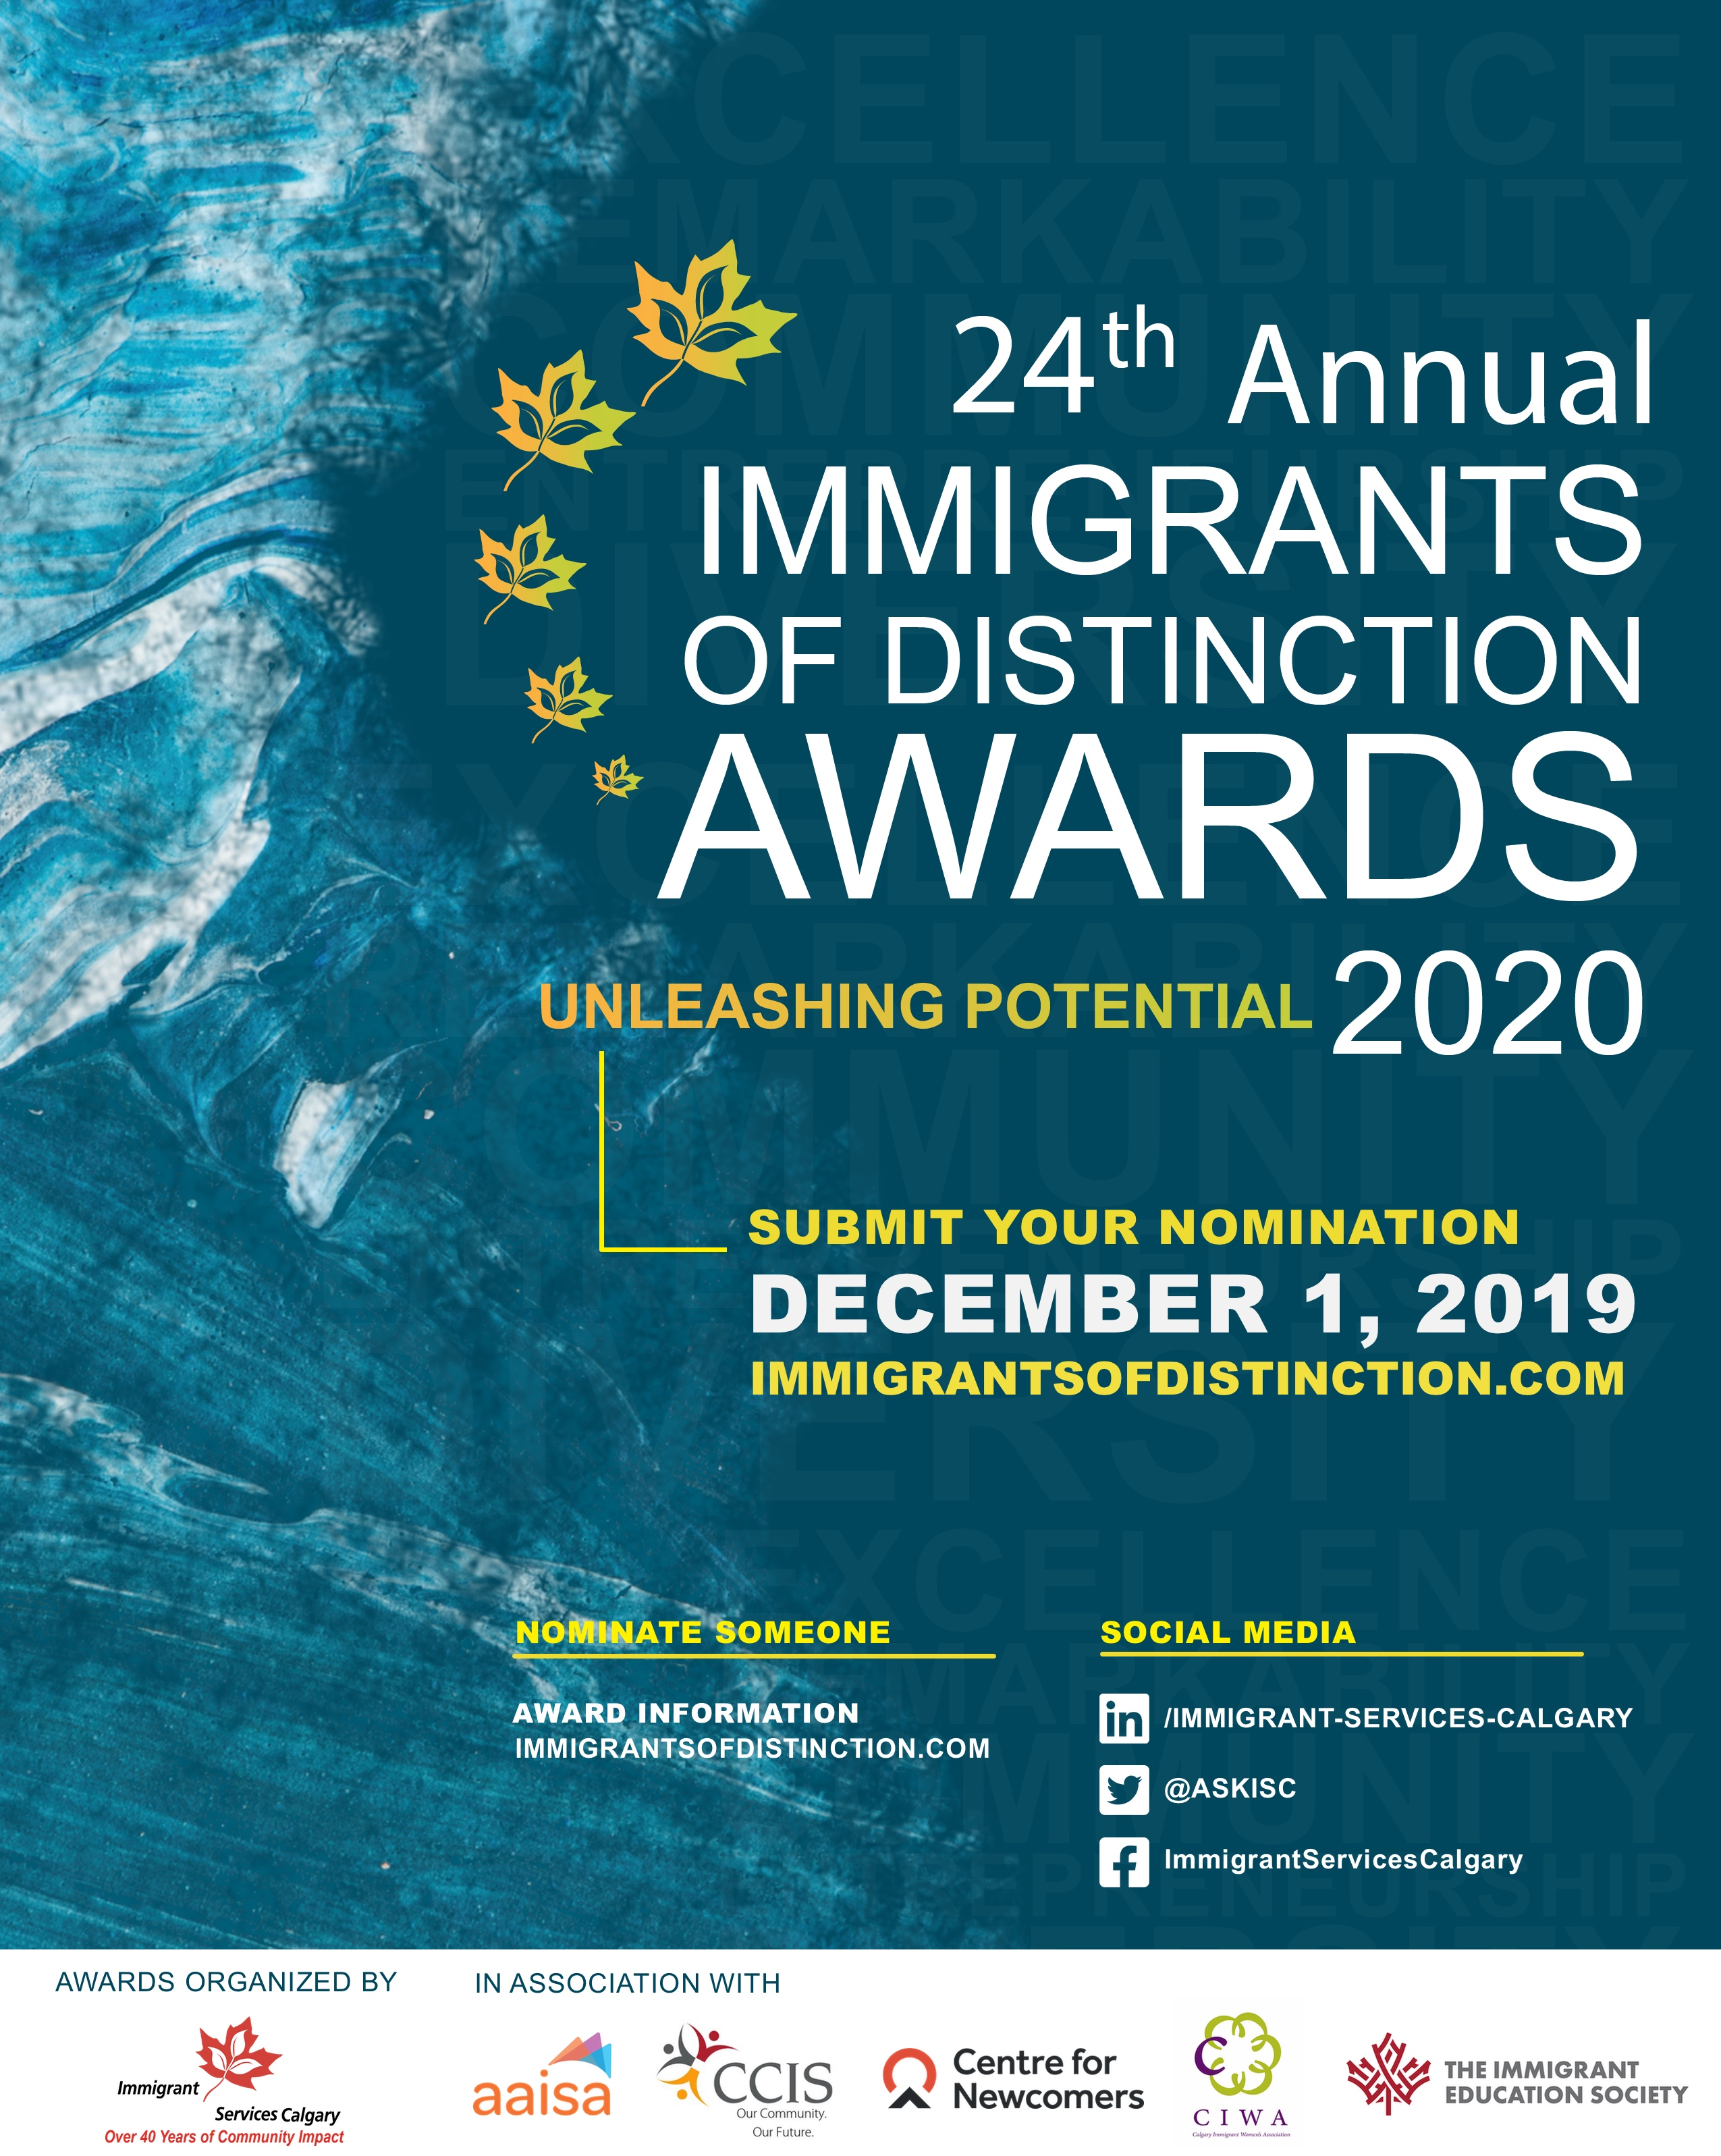 24th Annual Immigrants of Distinction Awards